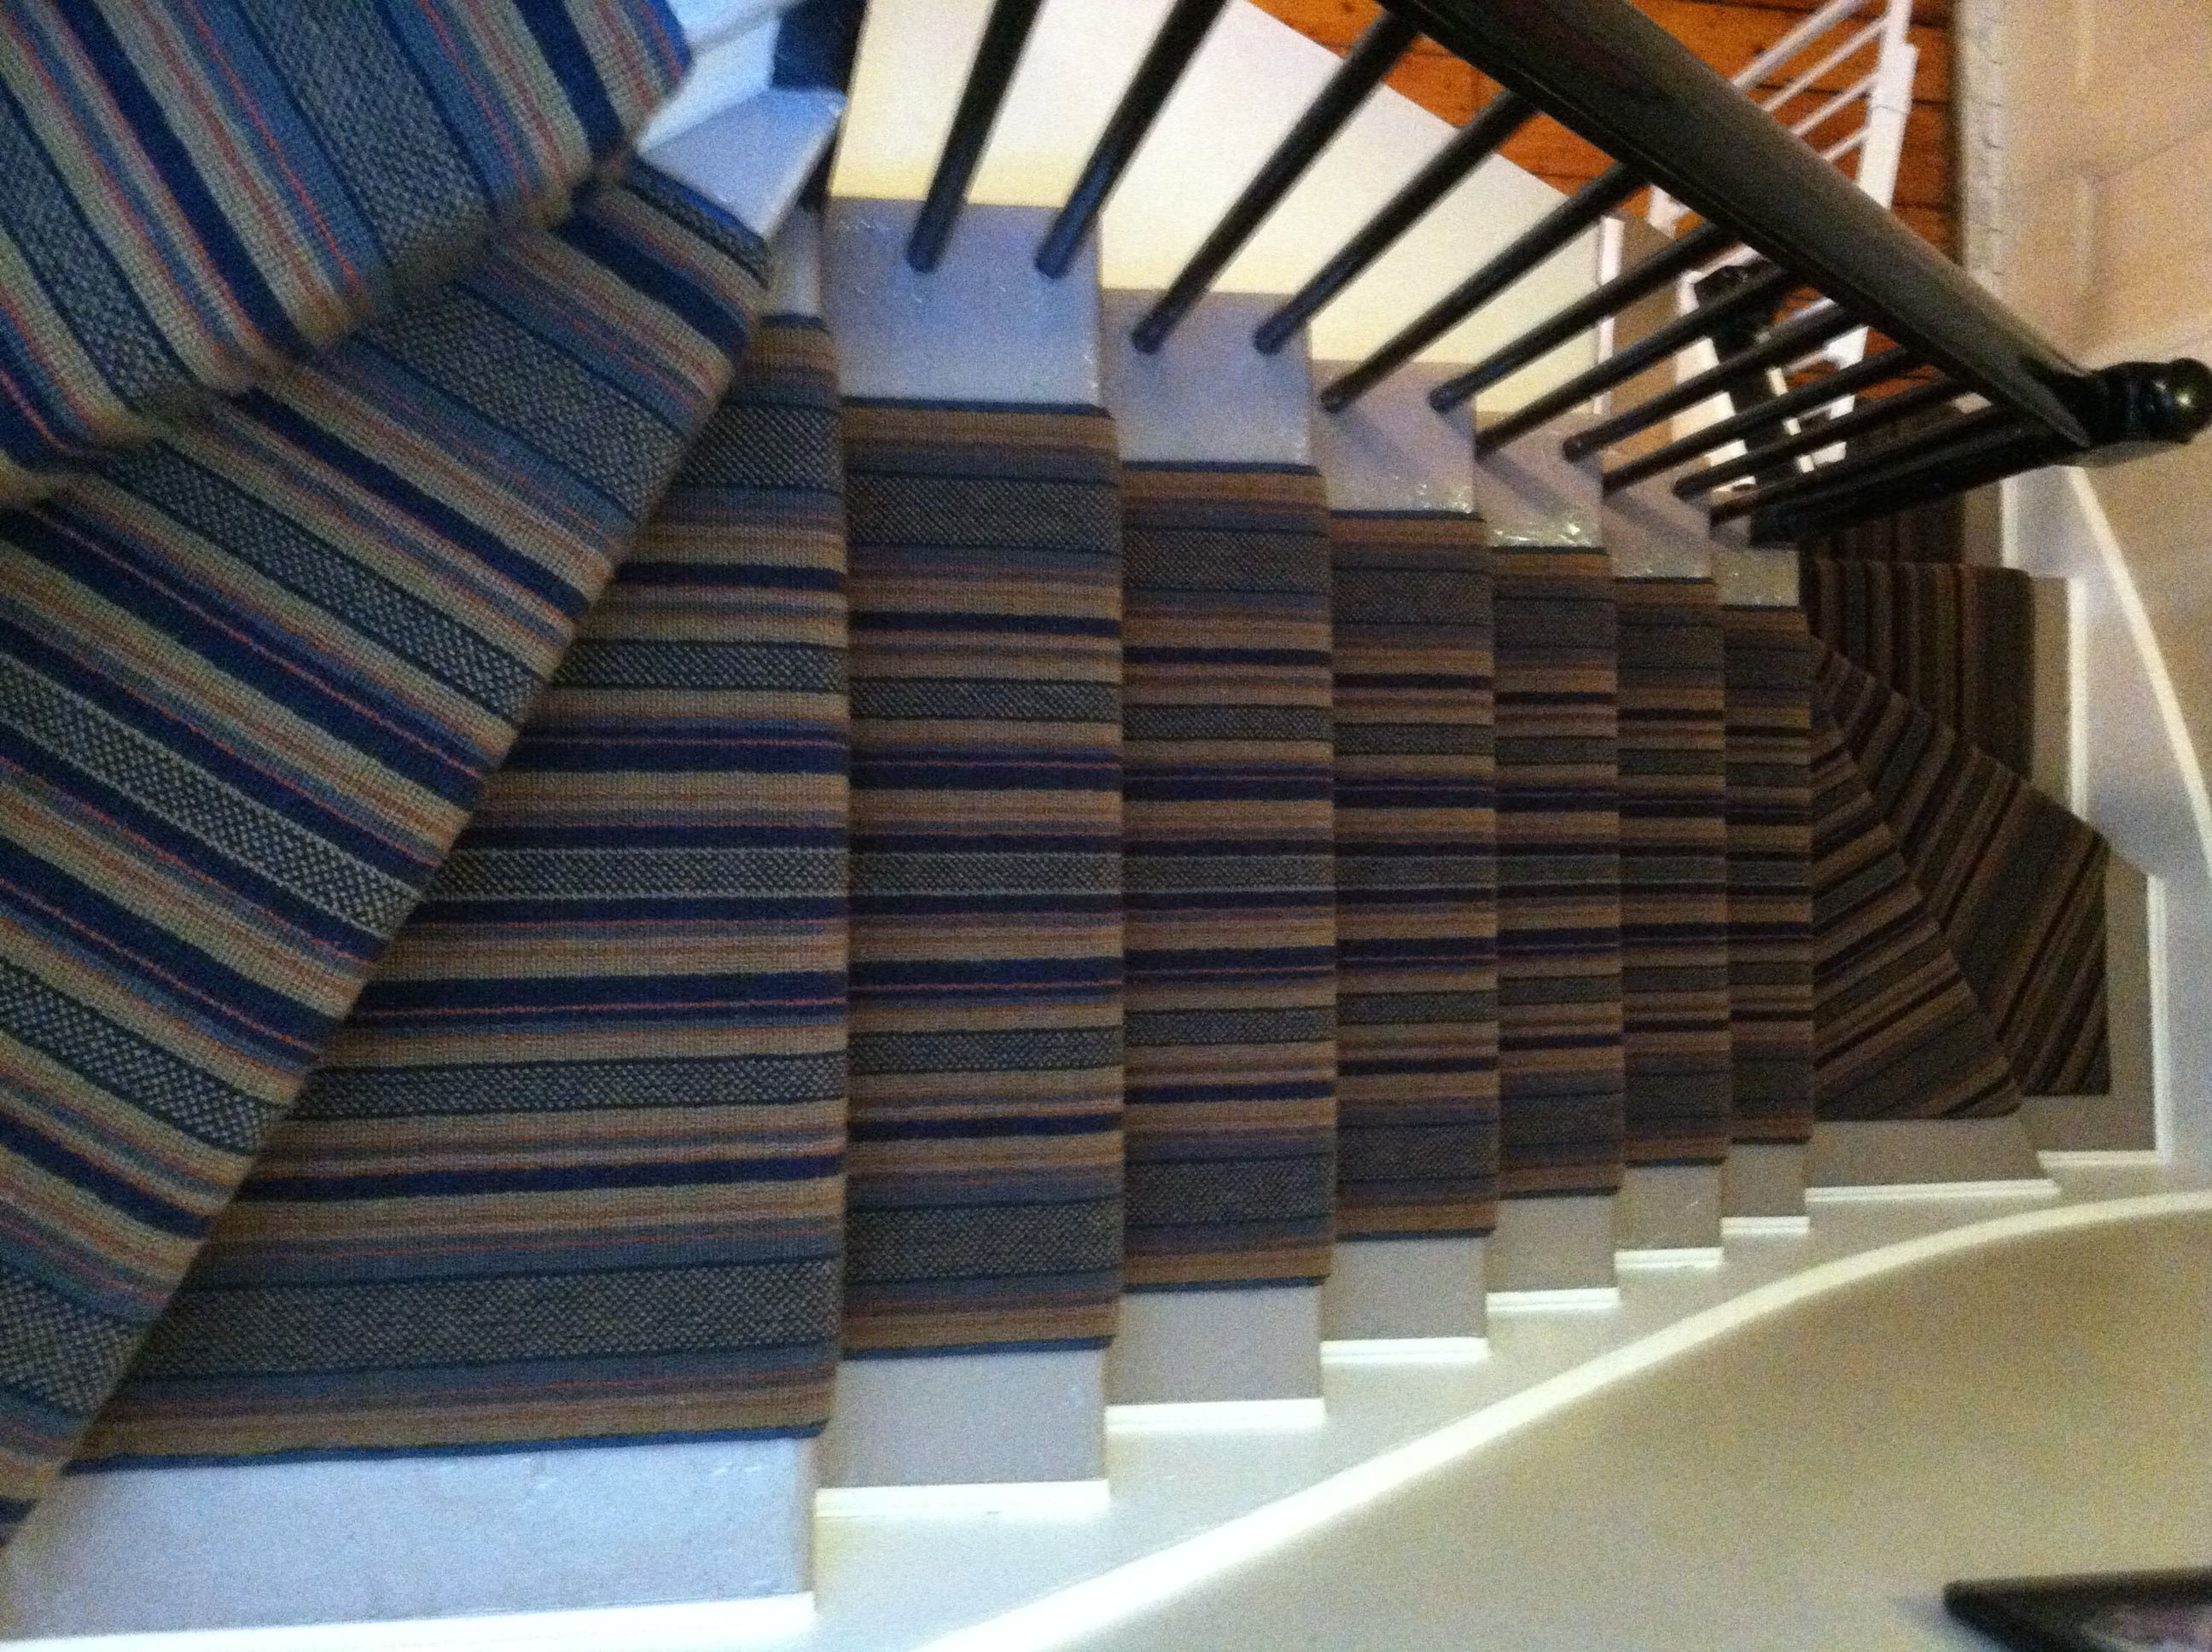 This Wool Carpet Remnant Was Fabricated And Installed As Stair Runner.  Www.carpetworkroom.